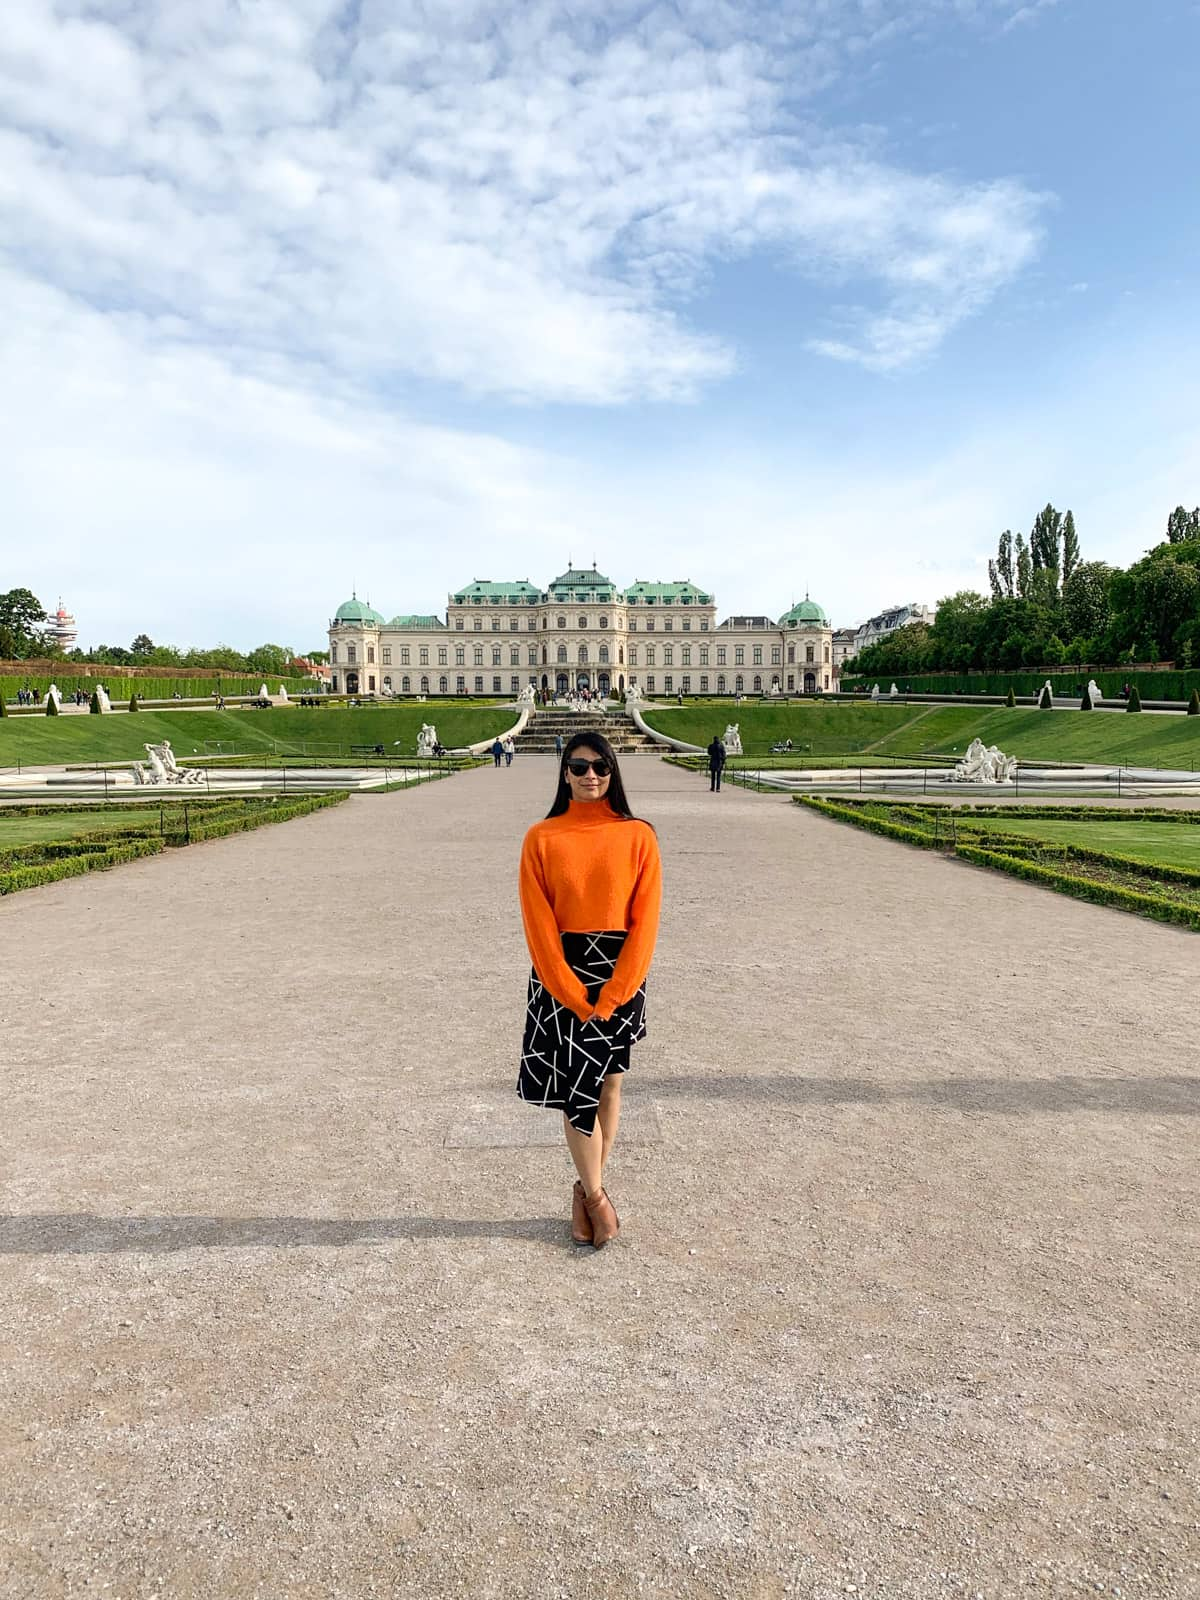 A woman wearing sunglasses, with an orange sweater and a black and white patterned skirt, standing in the middle of a wide path. The path leads to a palace in the distance, with green roofs. Beautiful gardens make up part of the grounds